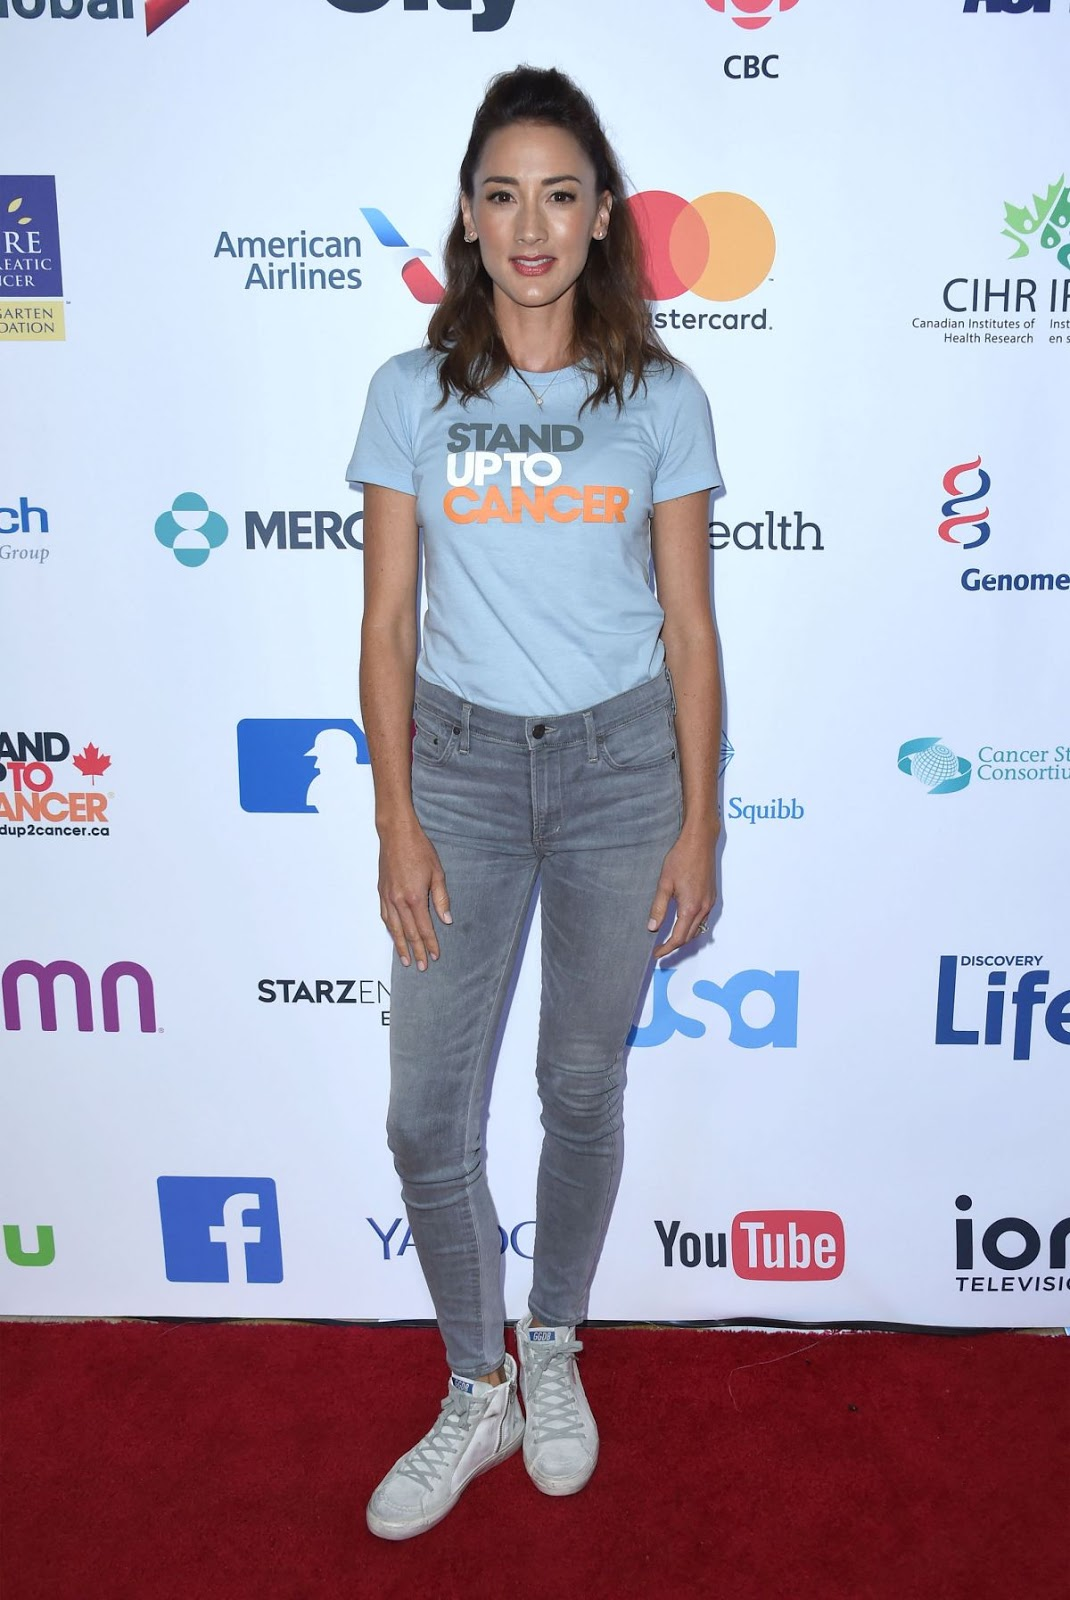 Full HQ Photos of Bree Turner At 5th Biennial Stand Up To Cancer, Los Angeles